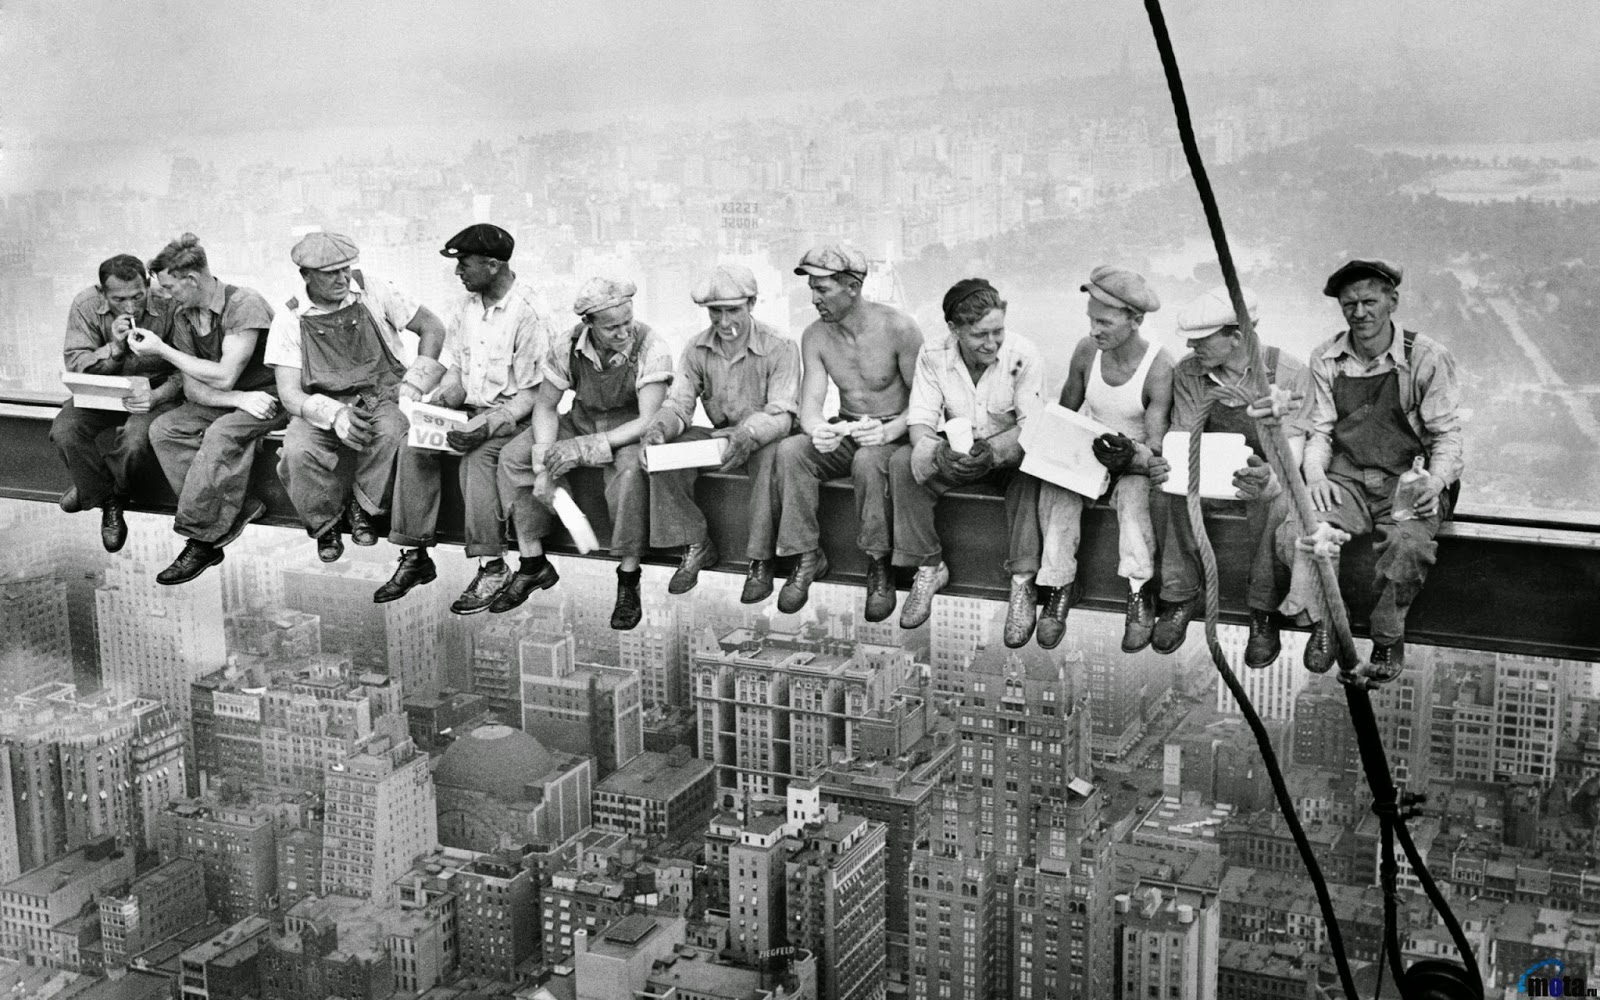 new york history geschichte lunch atop a skyscraper building search part 3. Black Bedroom Furniture Sets. Home Design Ideas